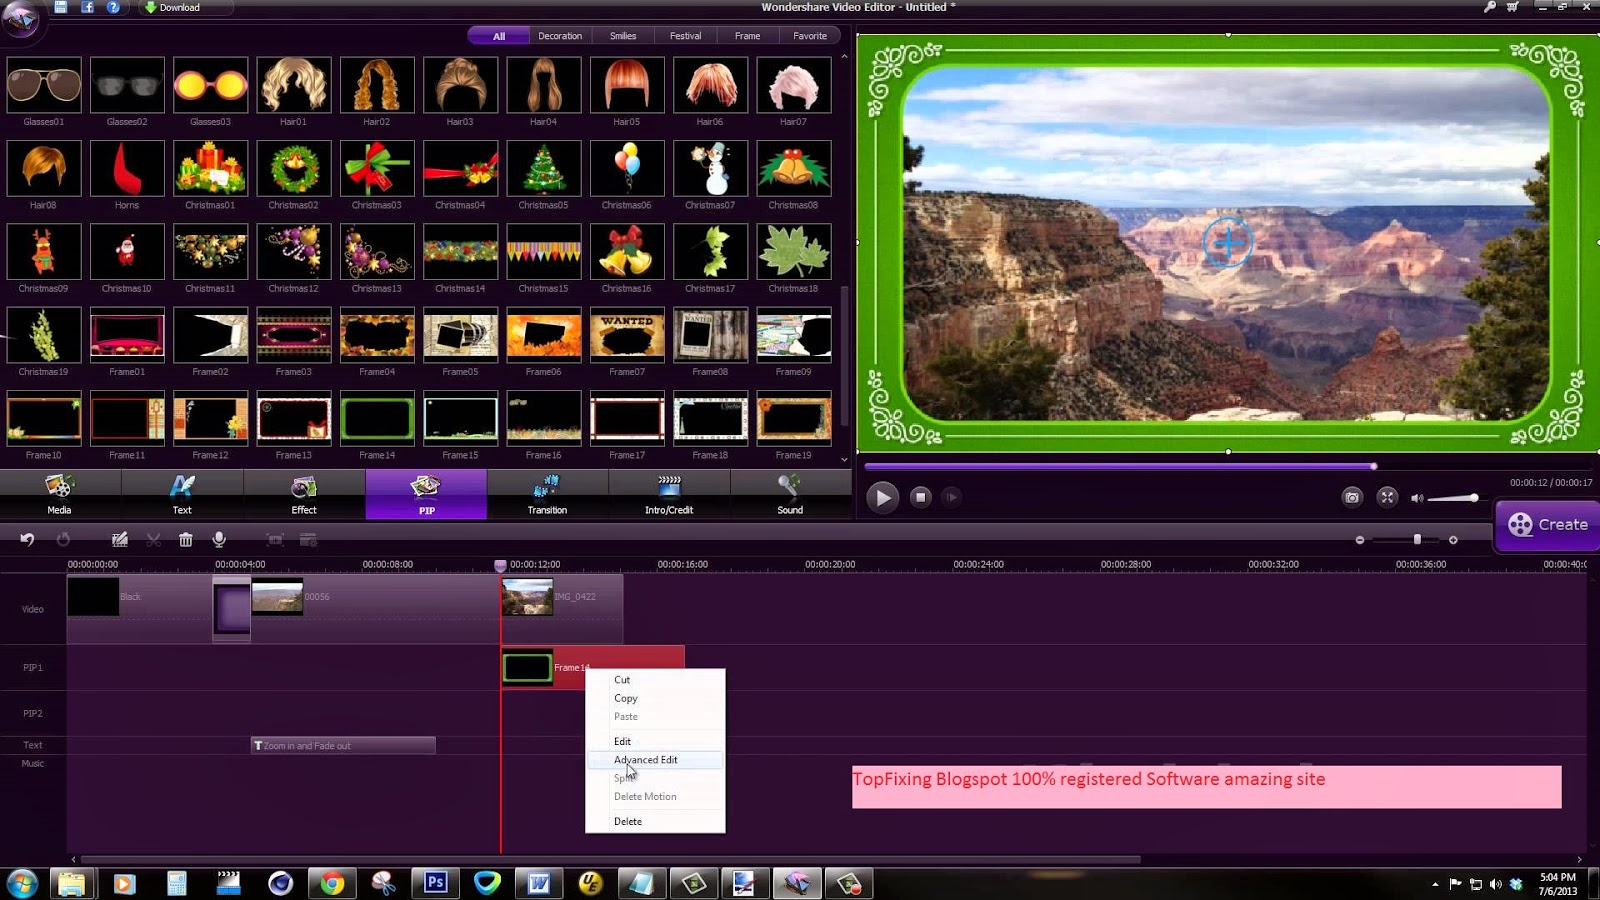 wondershare video editor 3.5 0 free download full version